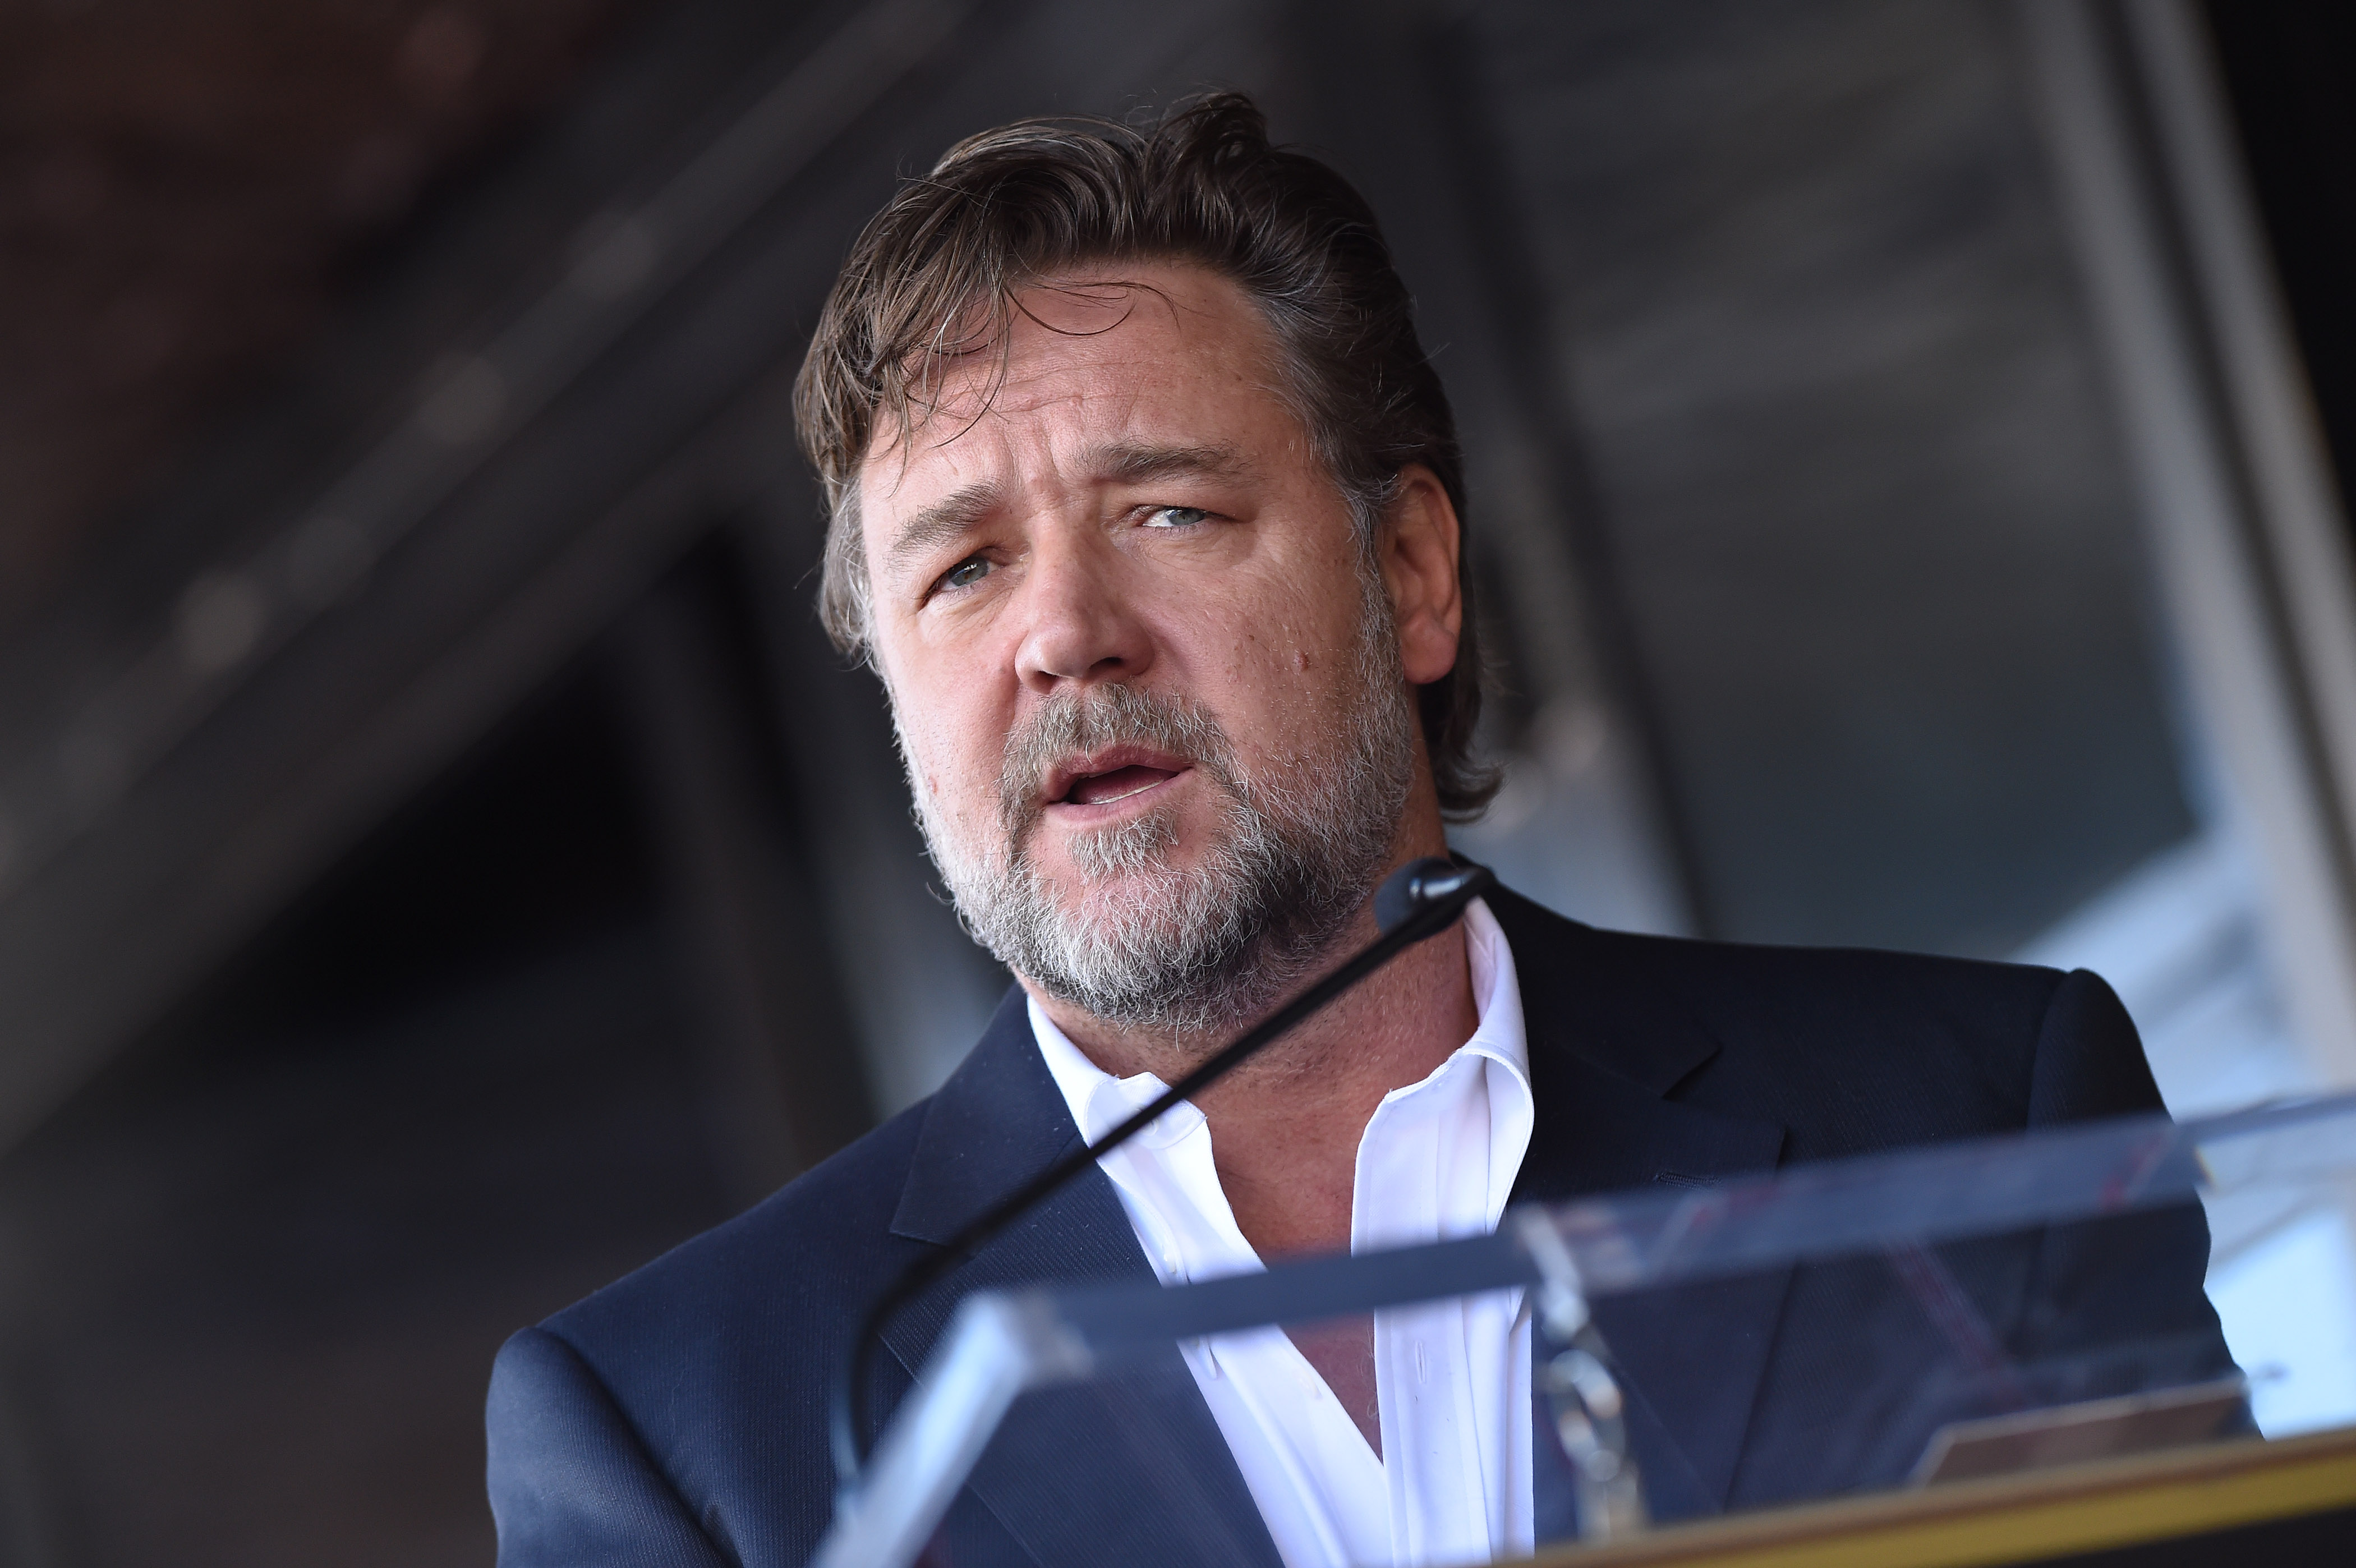 Actor Russell Crowe attends the ceremony honoring director Ridley Scott on Nov. 5, 2015 in Hollywood, California.